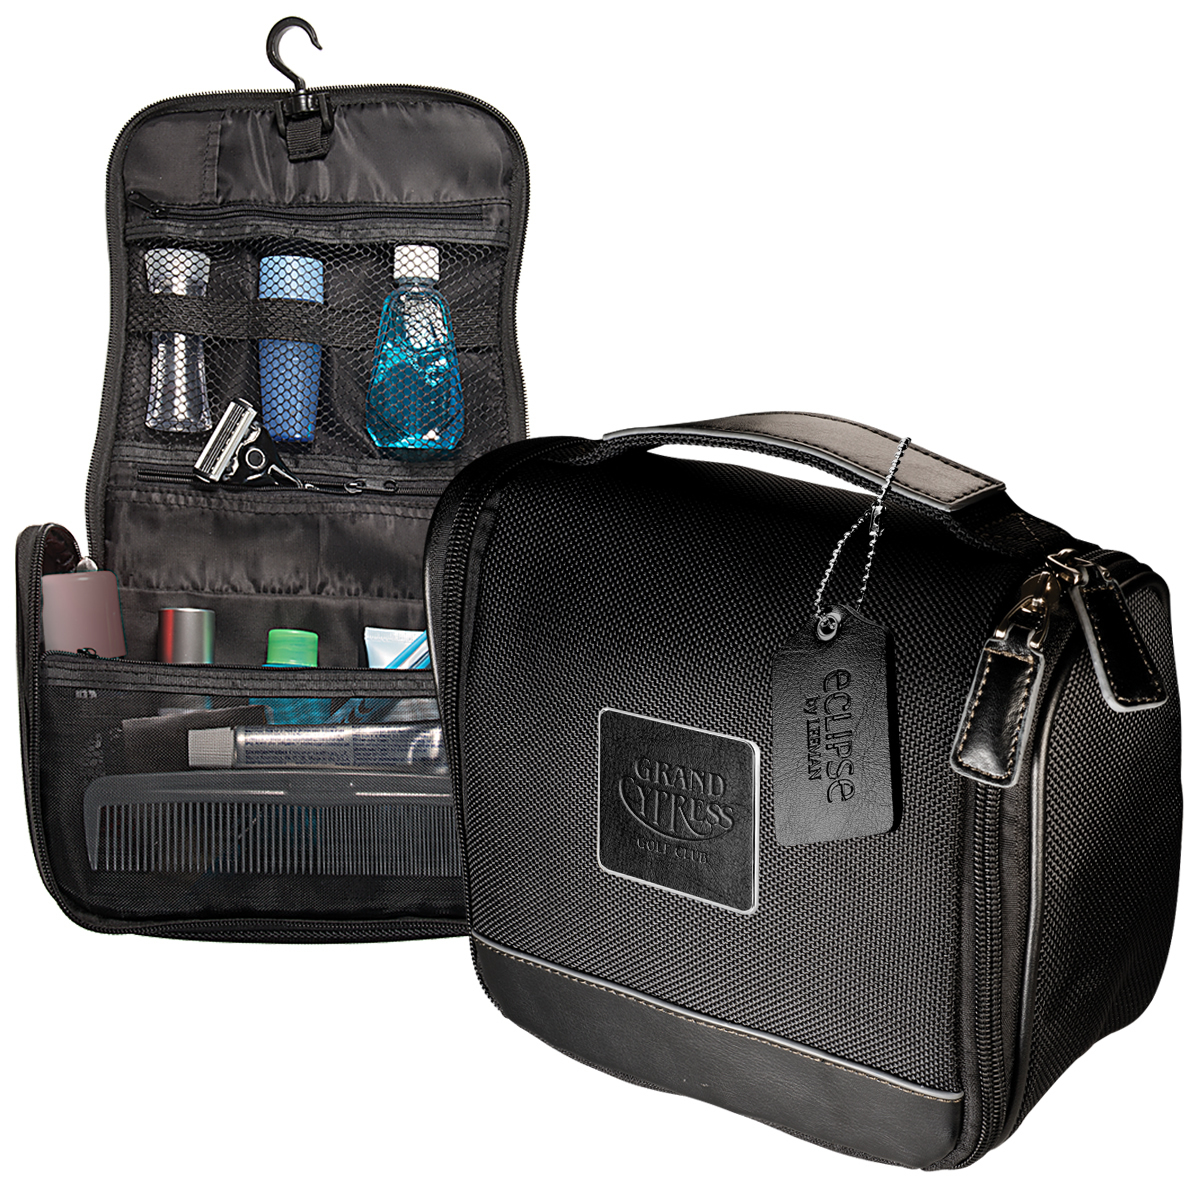 Promotional Eclipse Toiletry Bag  8f8a21b09eb63